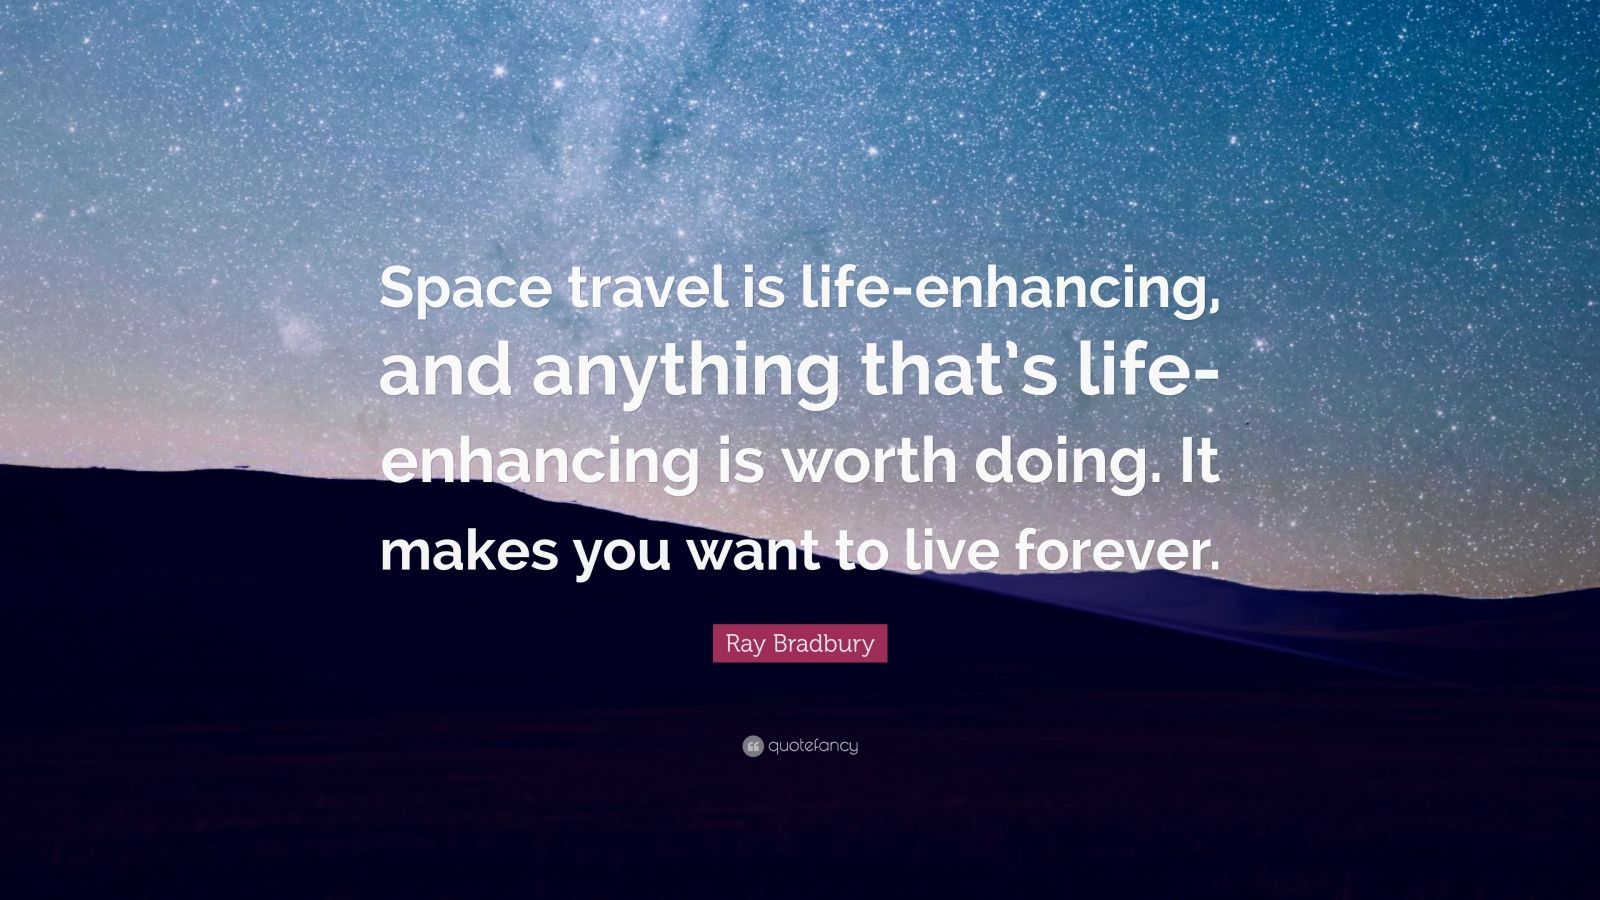 """Ray Bradbury Quote: """"Space travel is life-enhancing, and anything that's life-enhancing is worth doing. It makes you want to live forever."""""""